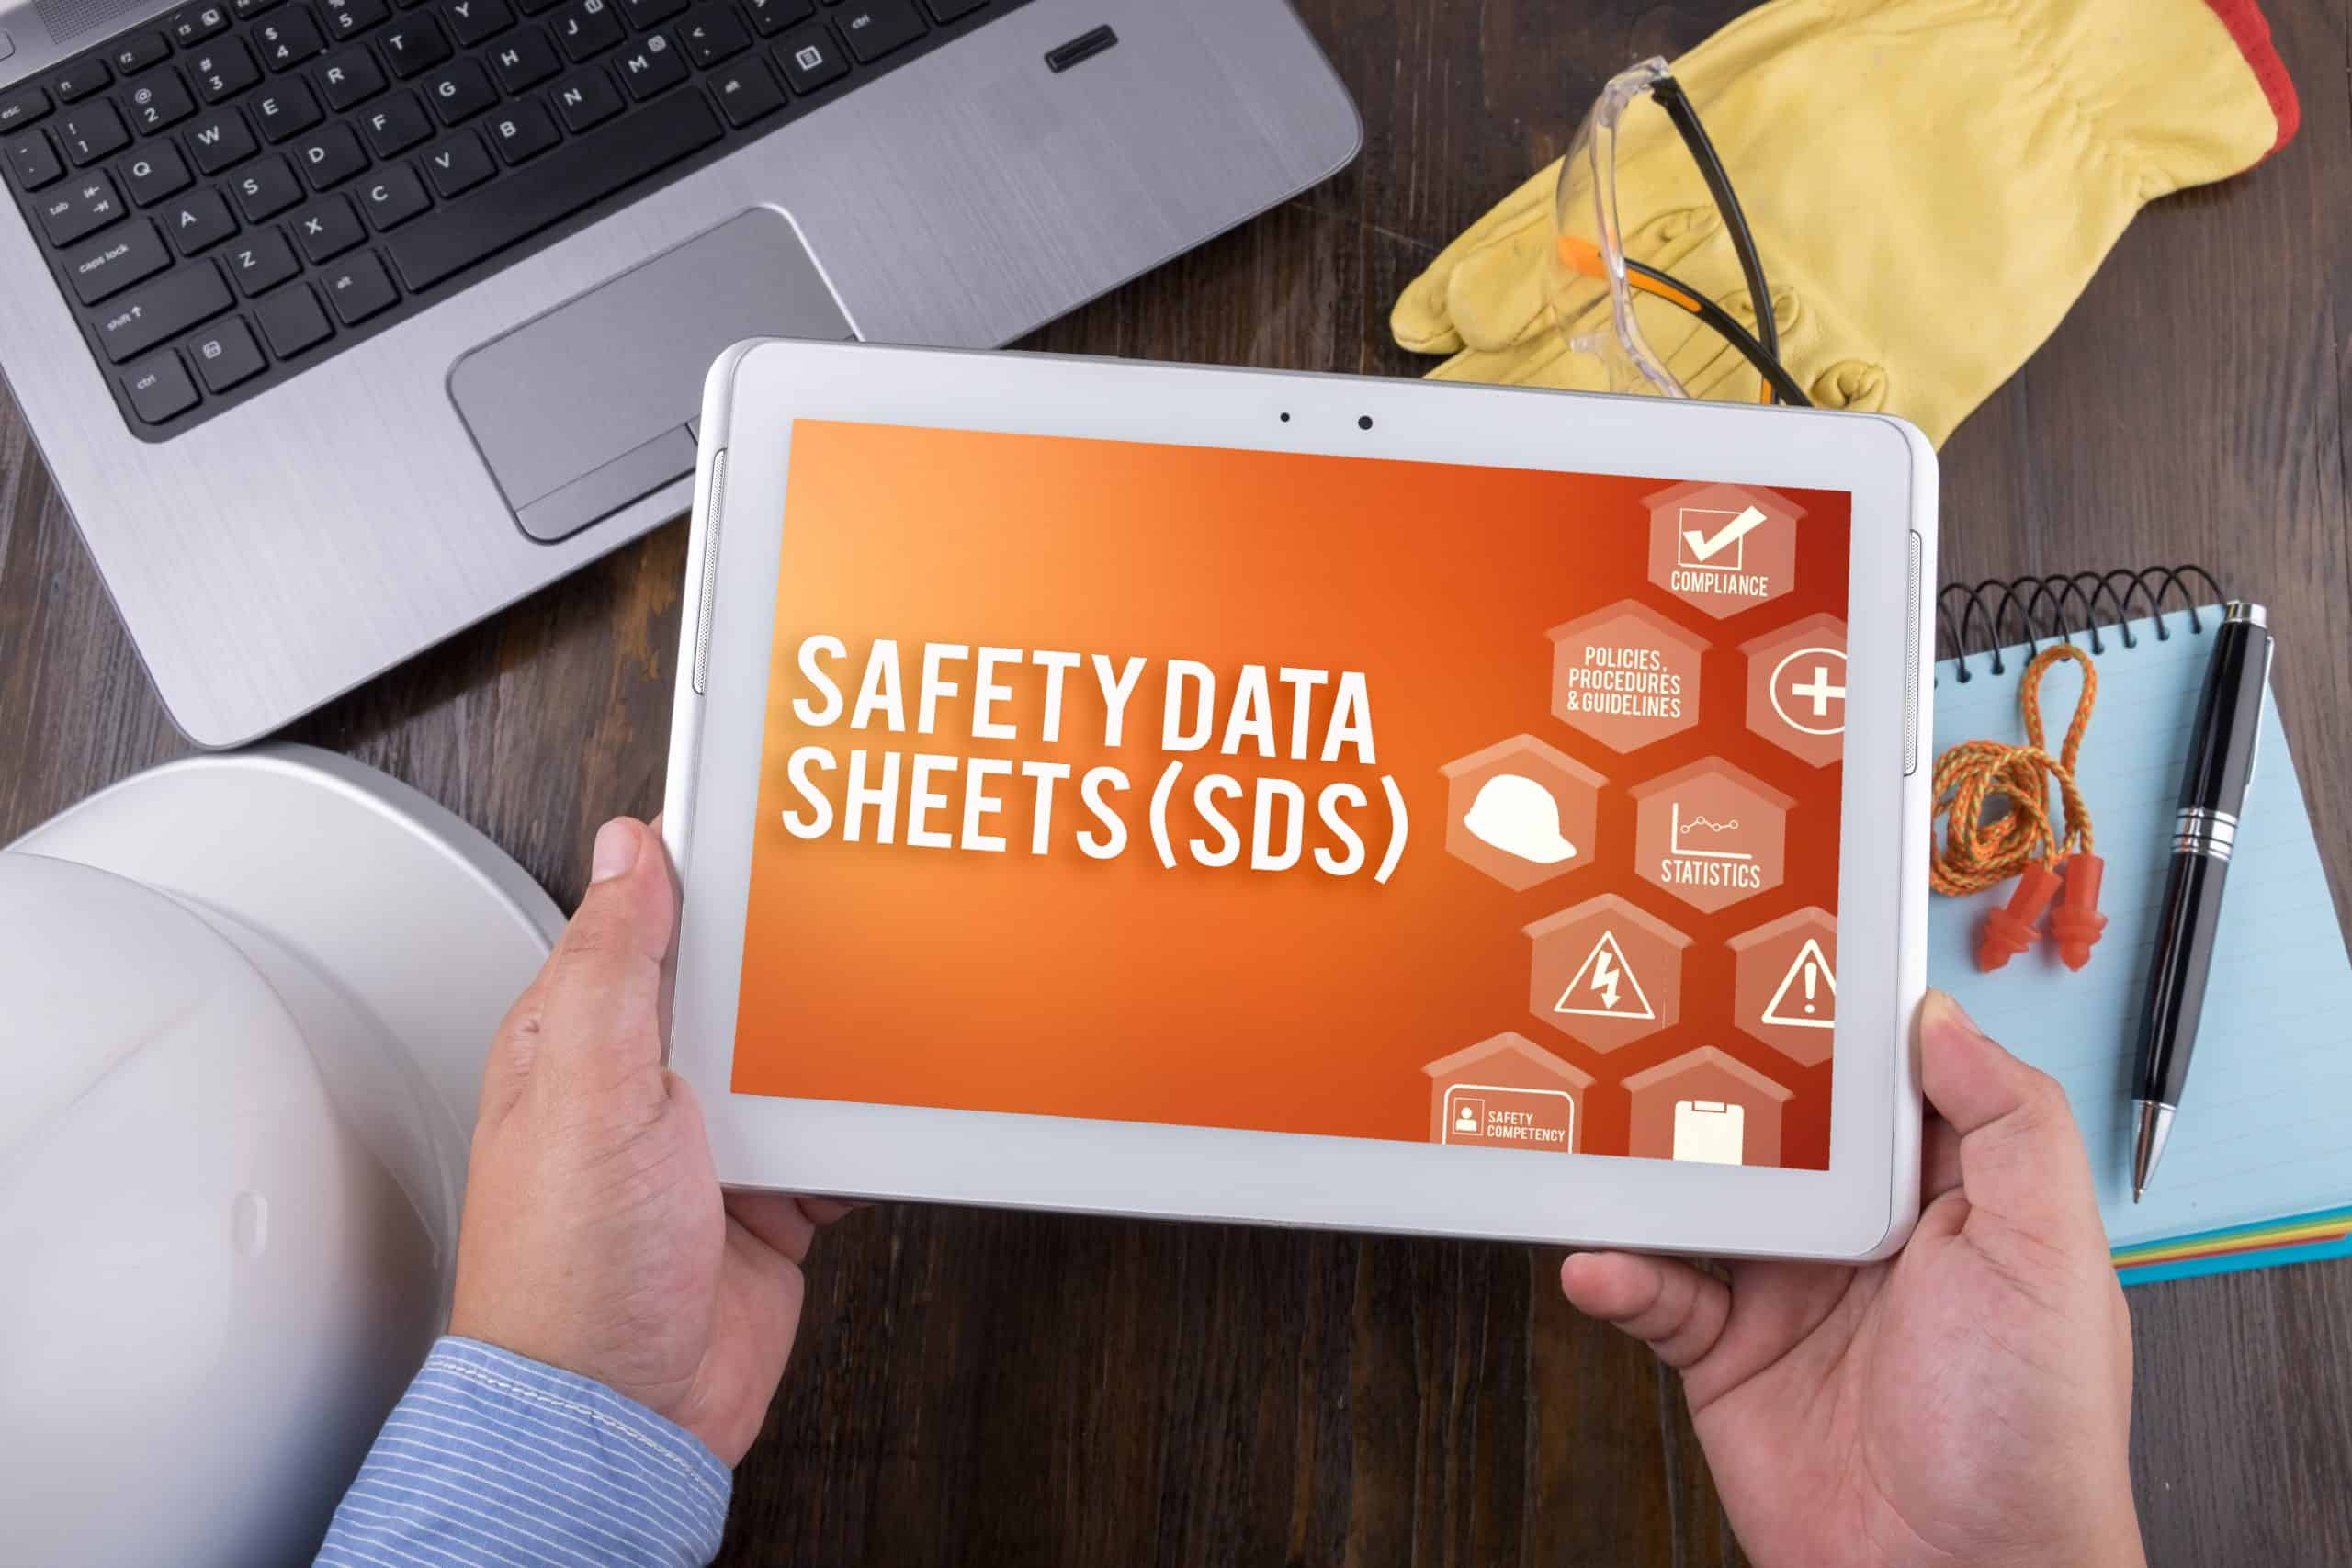 SAFETY DATA SHEETS (SDS) on tablet